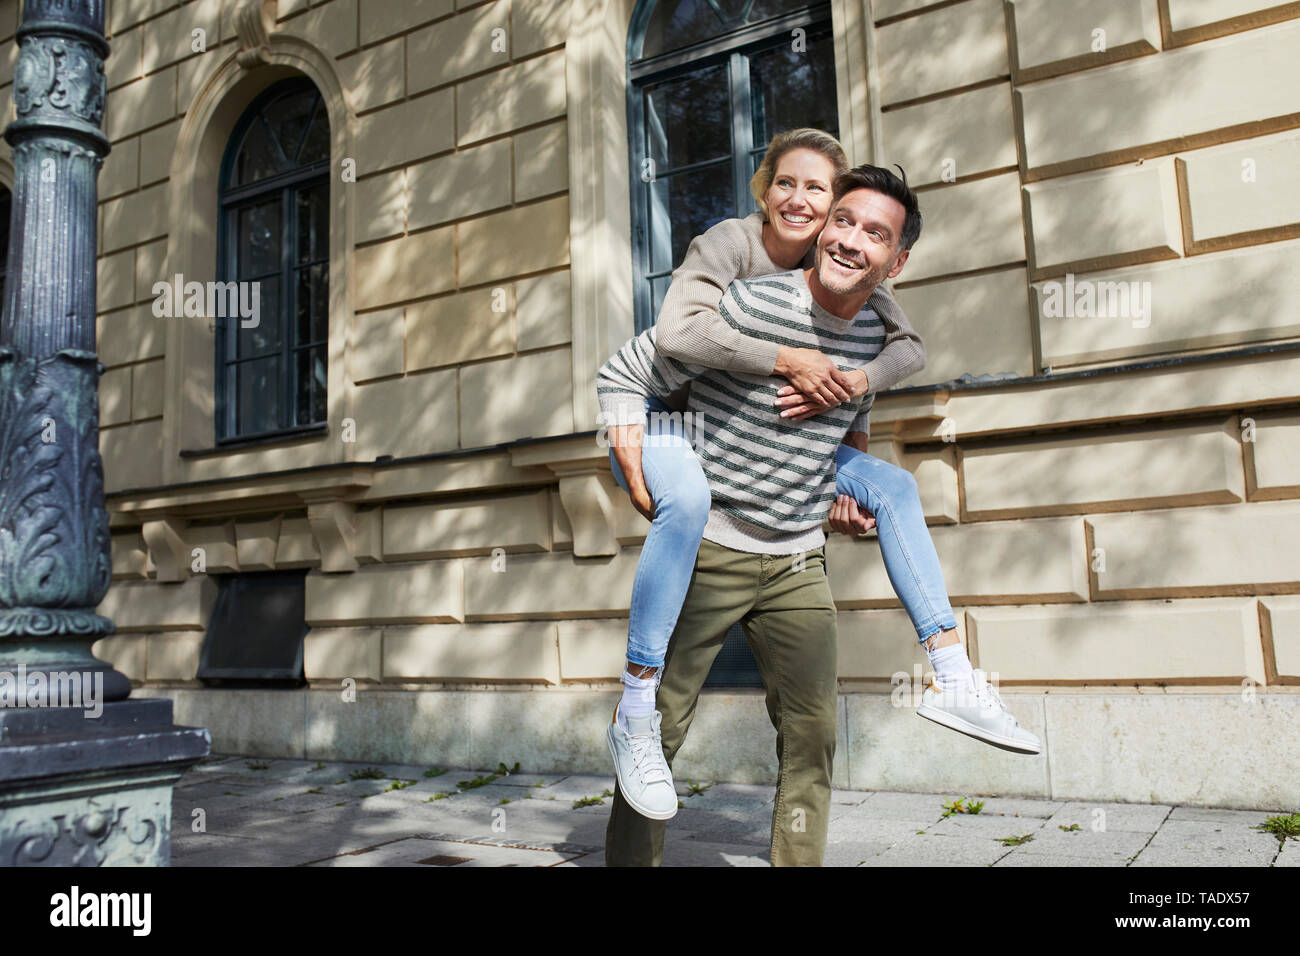 Happy man giving woman piggyback ride on pavement in the city - Stock Image